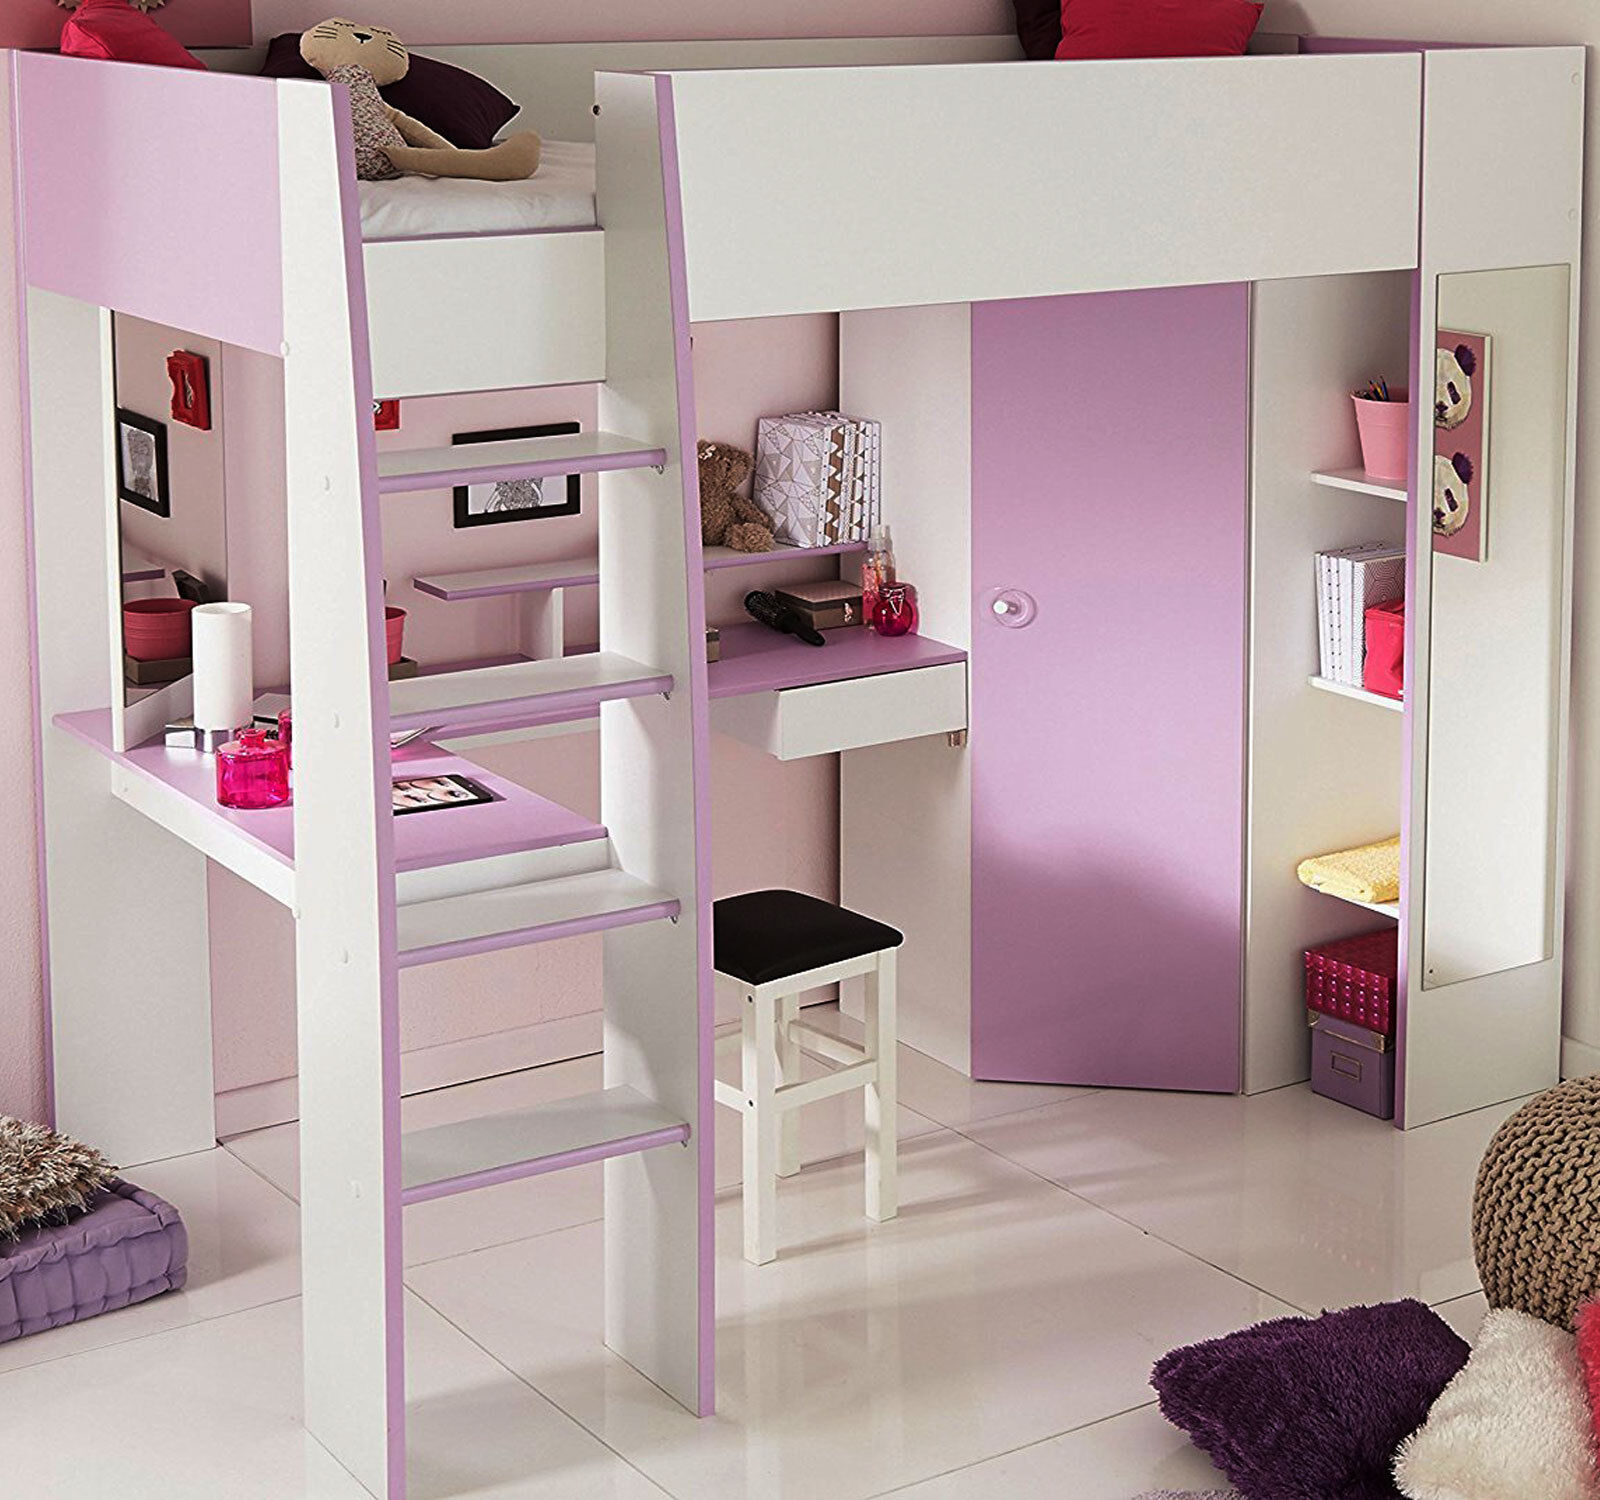 kombibett kinderbett lila weiss schrank hochbett hochbett schreibtisch yasmin ebay. Black Bedroom Furniture Sets. Home Design Ideas